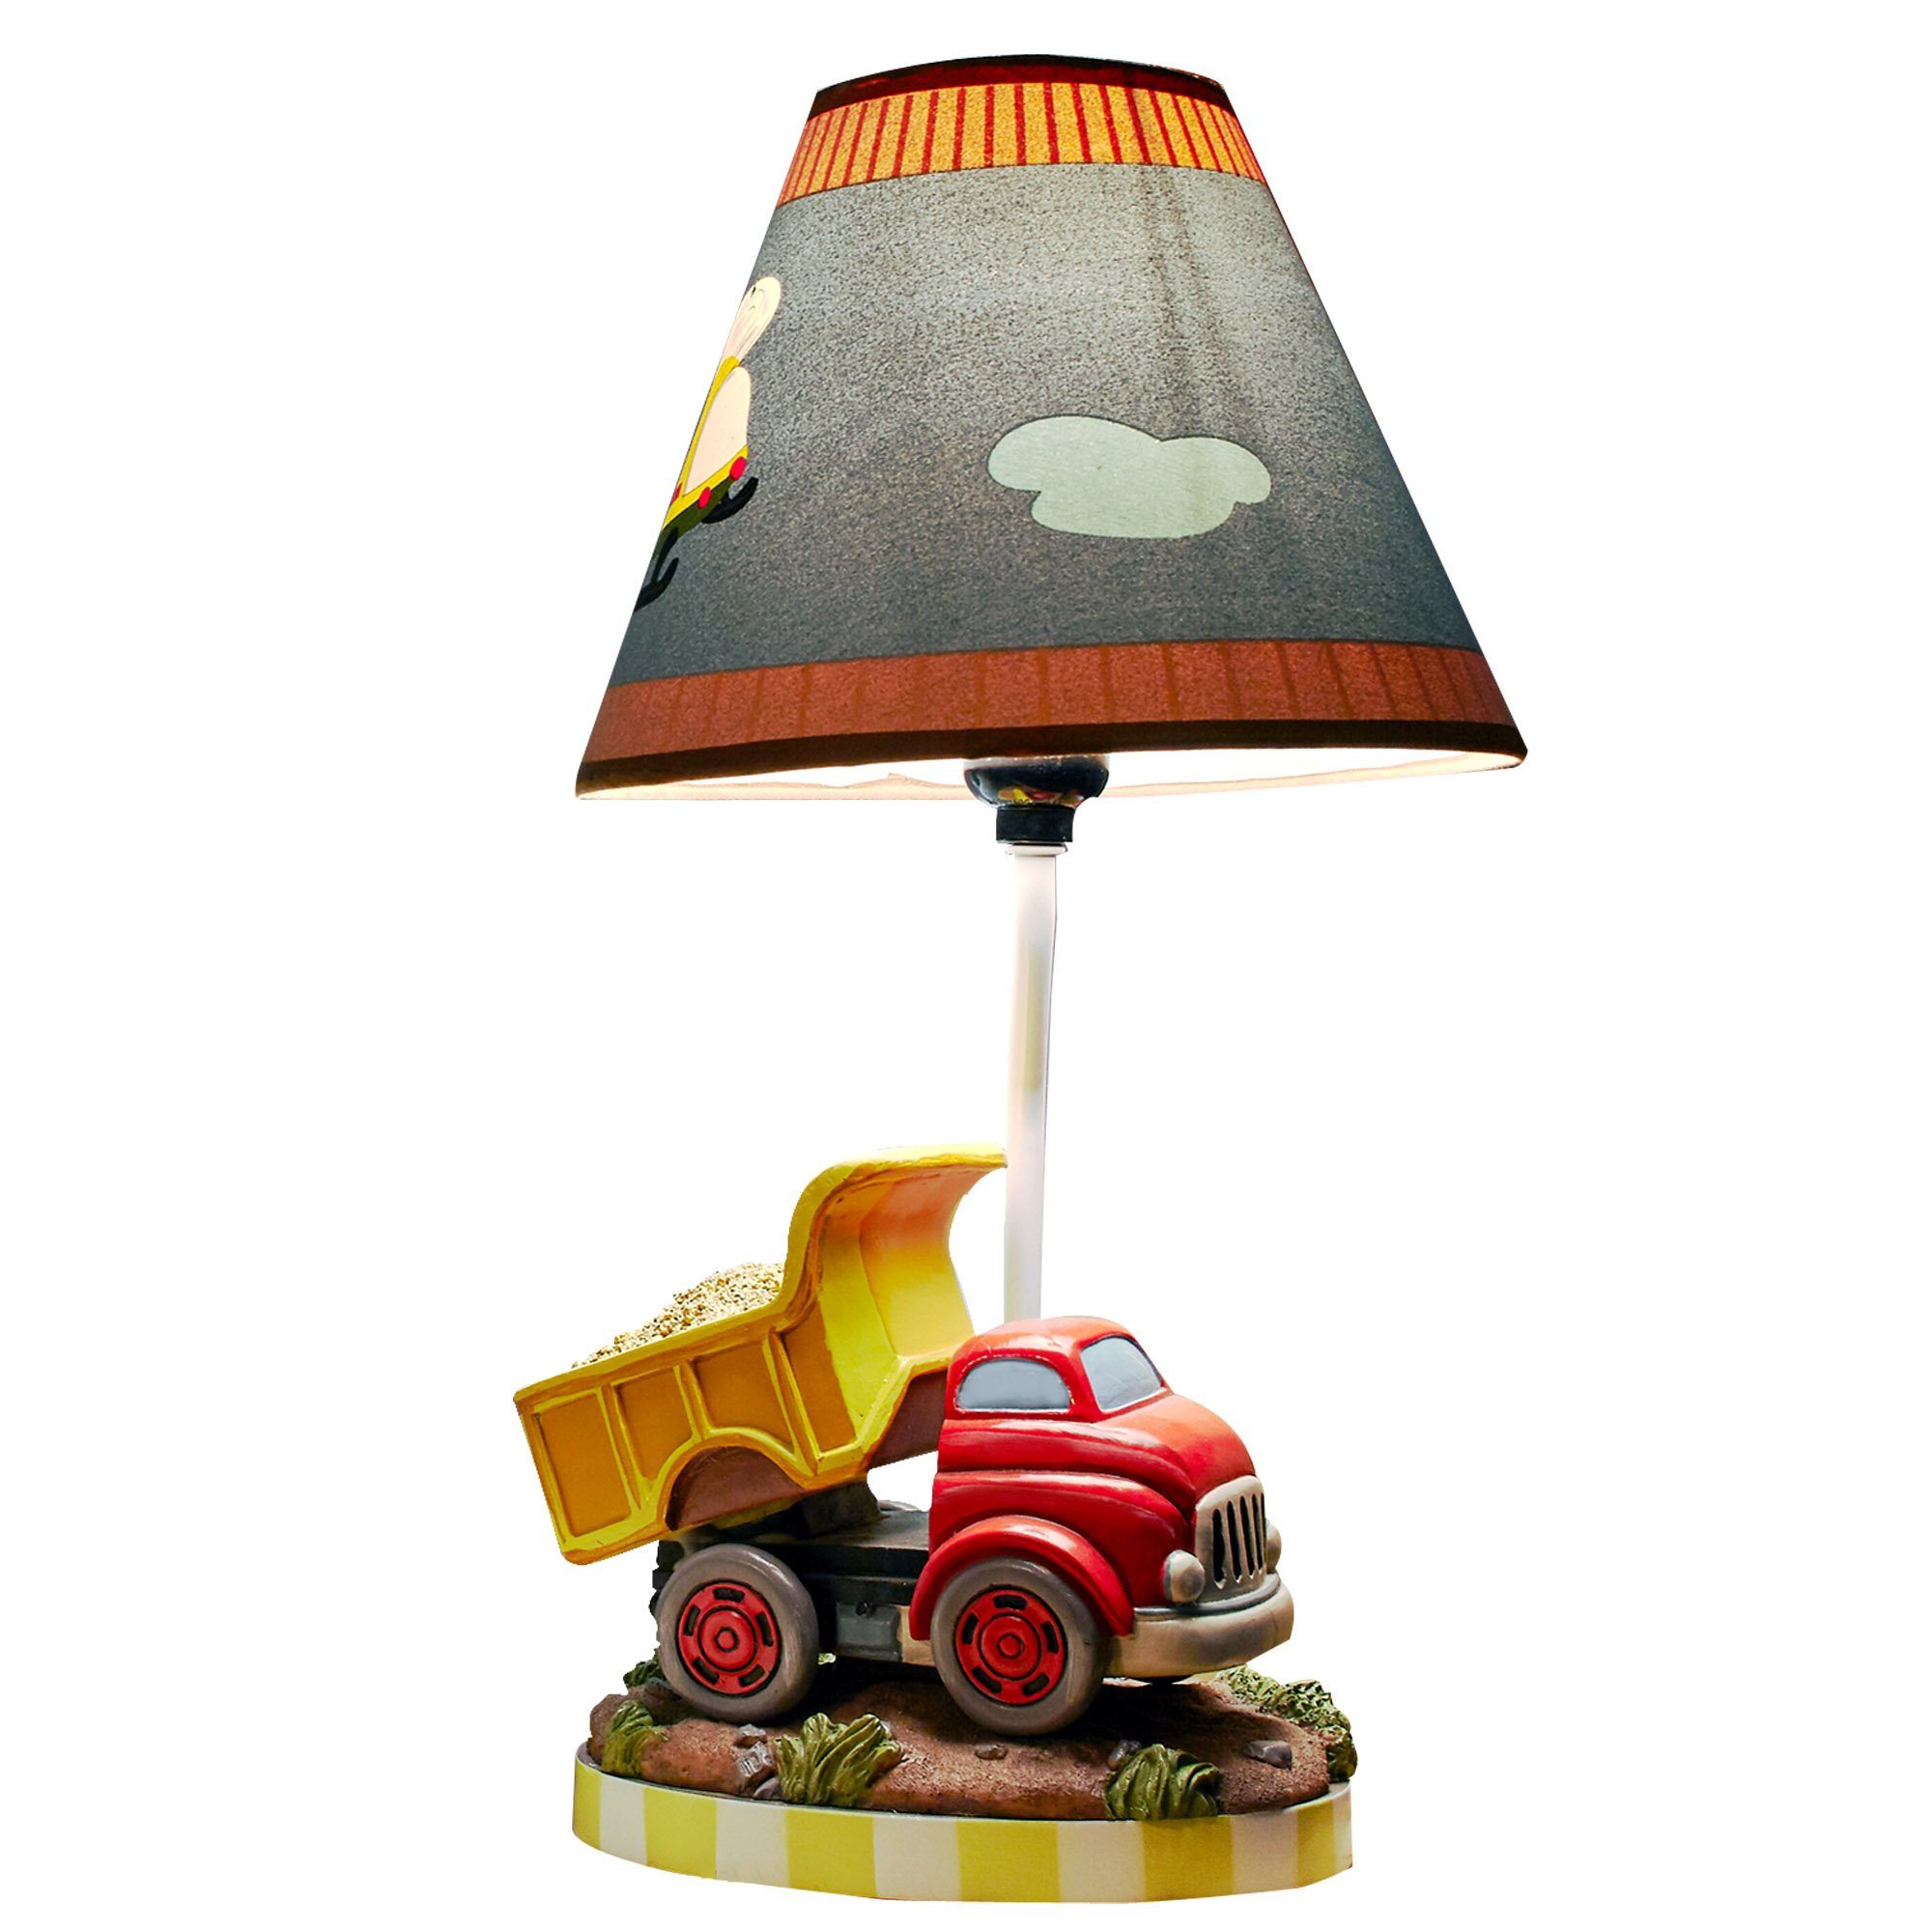 Teamson Design Corp Fantasy Fields - Transportation Thematic Kids Table Lamp   Imagination Inspiring Hand Painted Details   Non-Toxic, Lead Free Water-based Paint